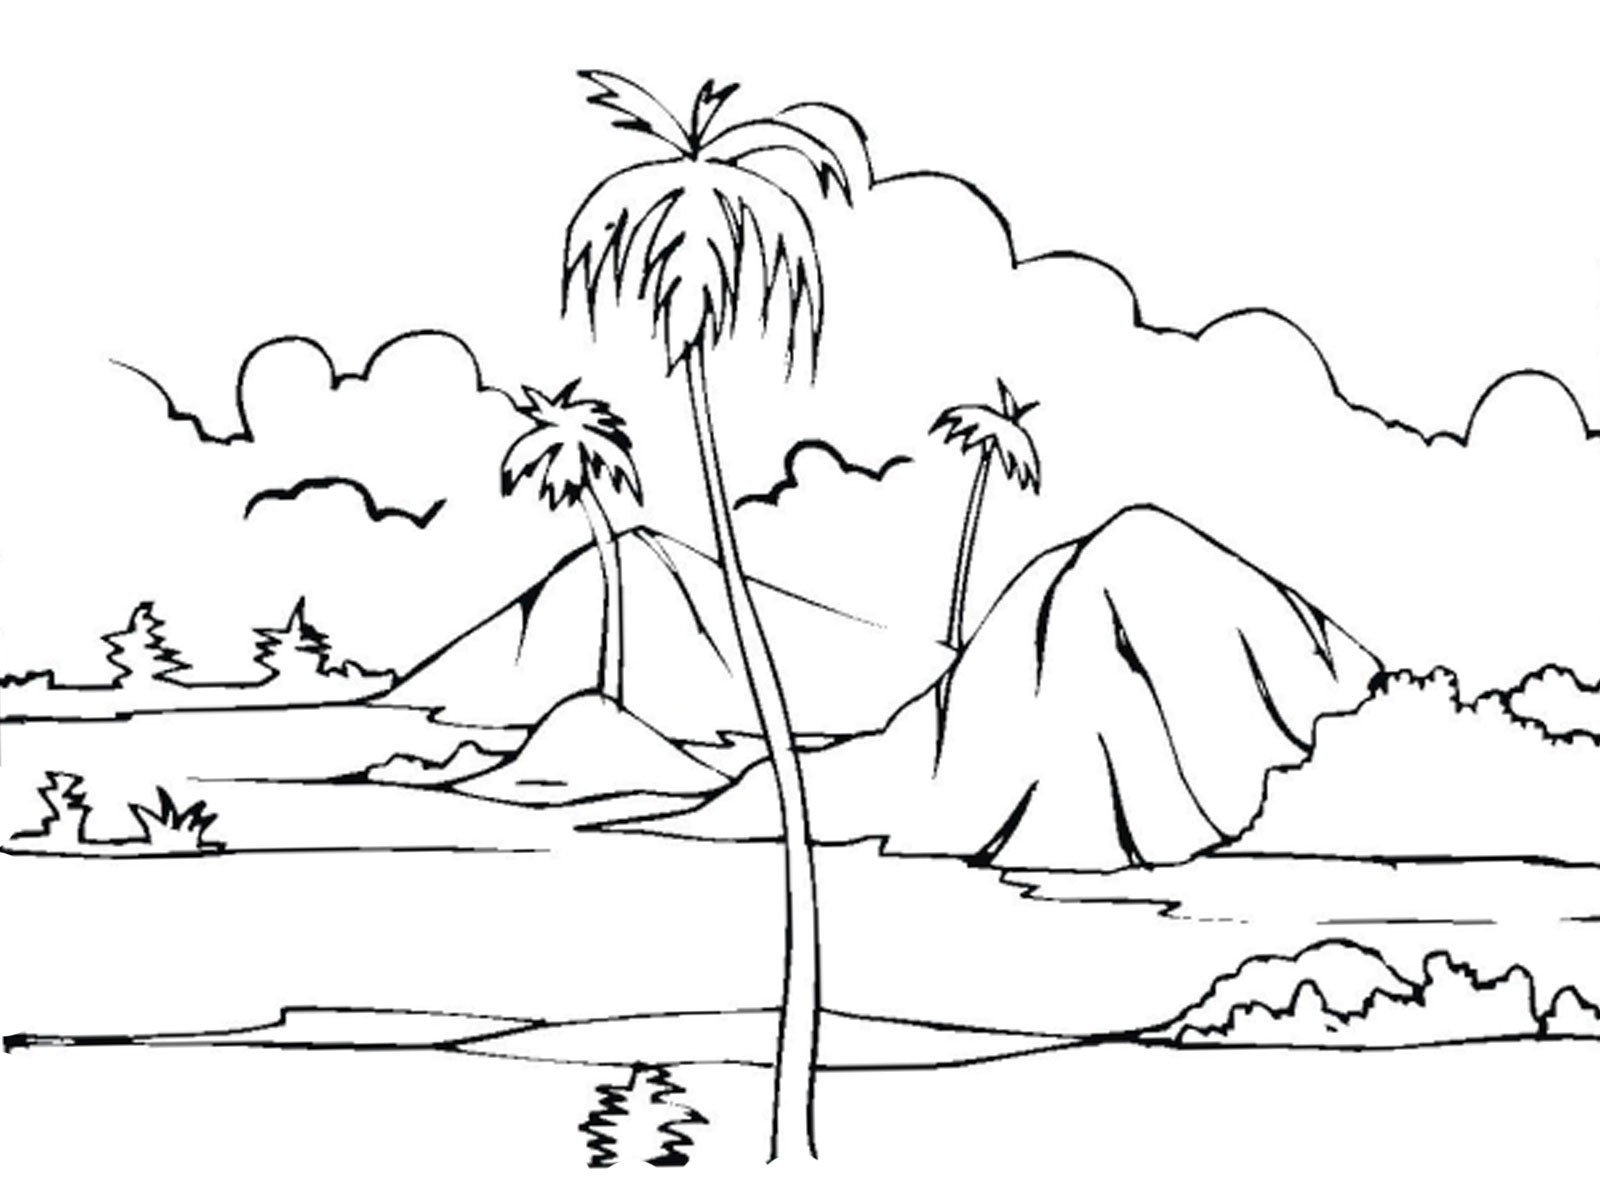 coloring nature images printable nature coloring pages for kids images nature coloring